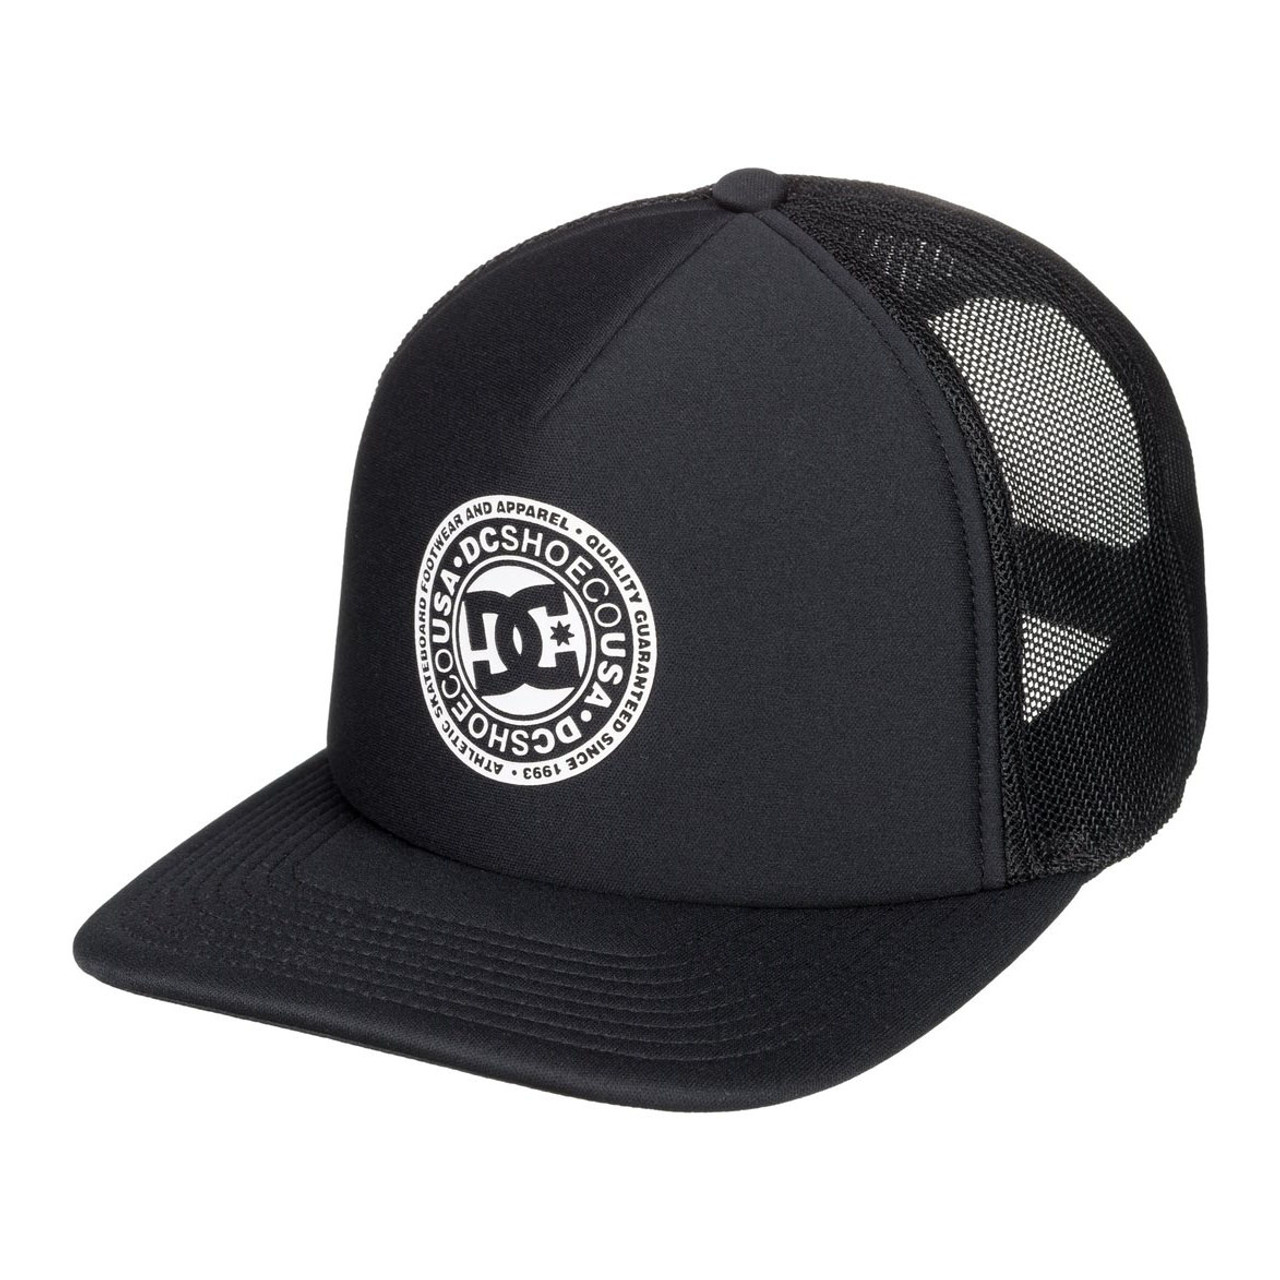 2cac90e84367d DC Hat - Vested Up - Black - Surf and Dirt